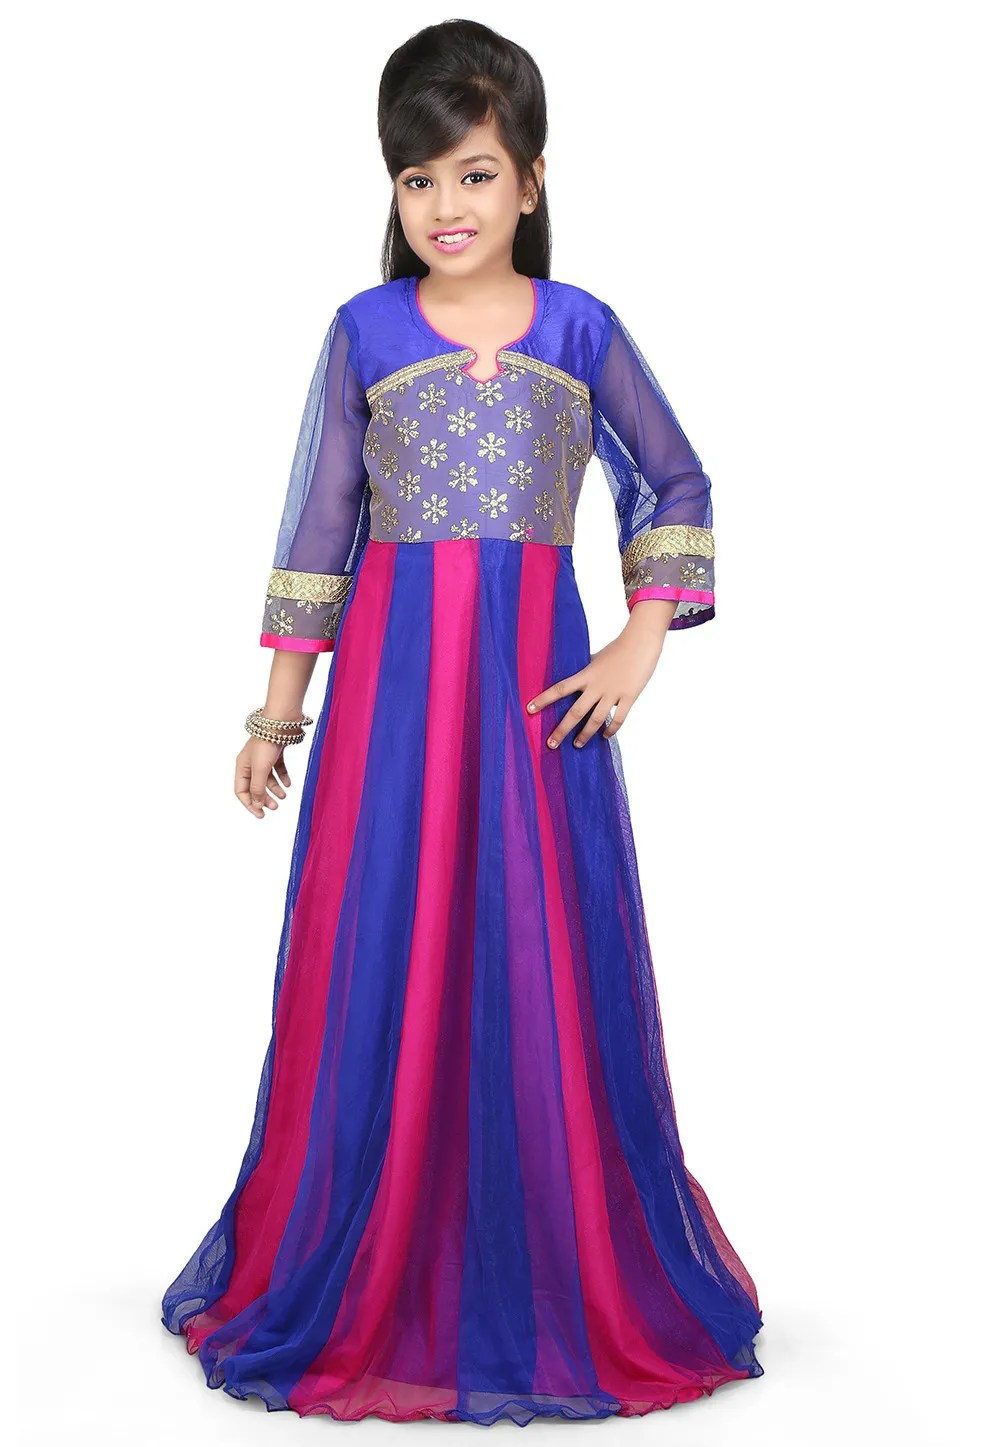 Embroidered Net Gown in Fuchsia and Blue  UNJ497